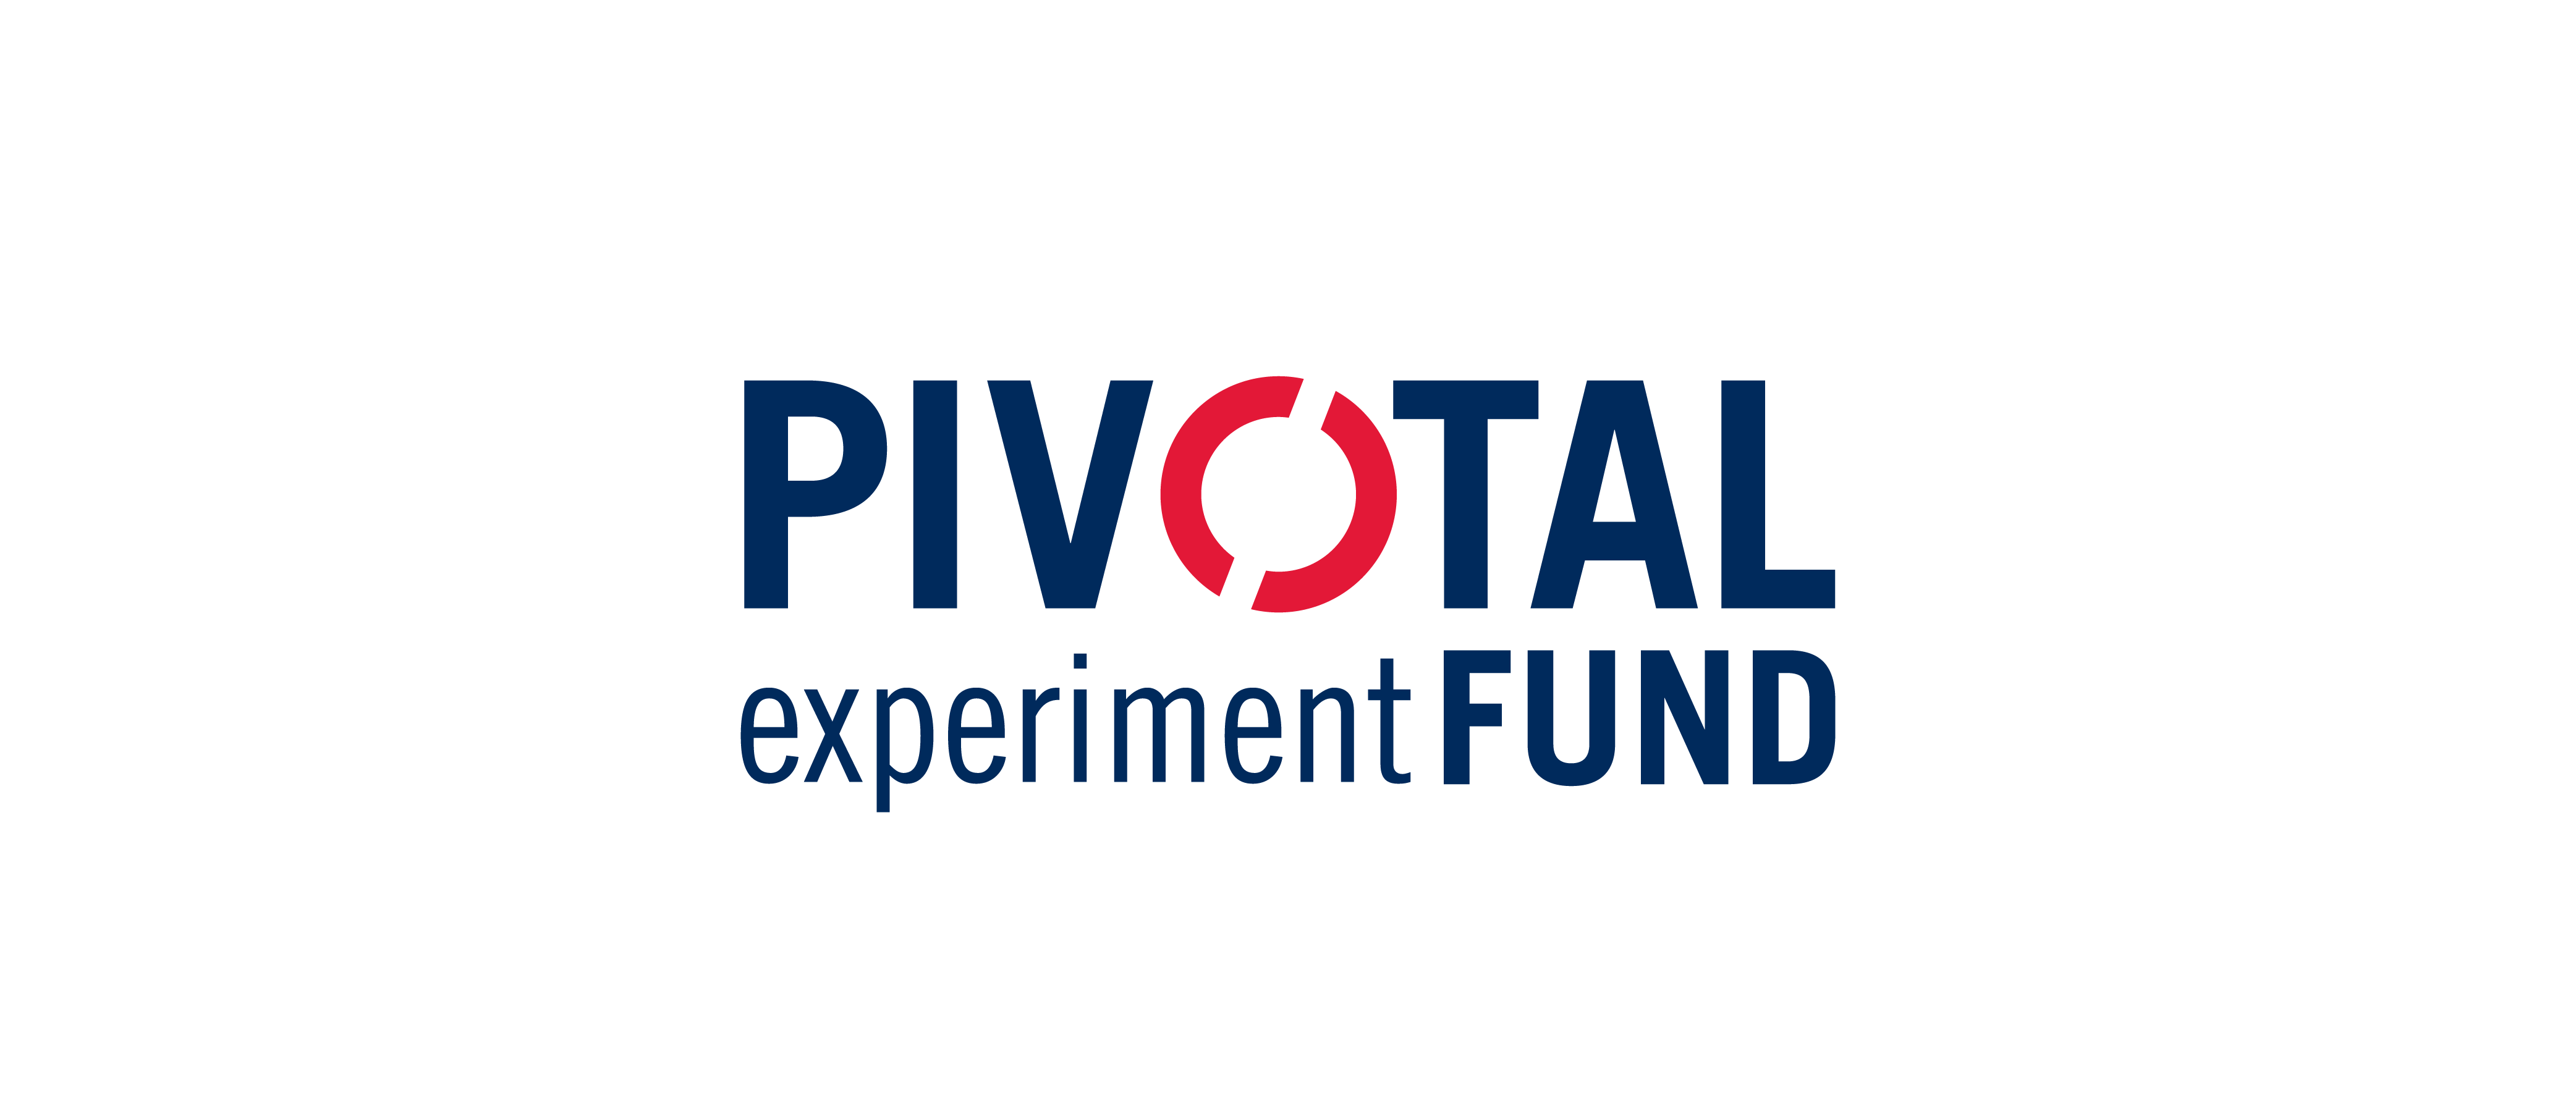 Pivotal Experiment Fund